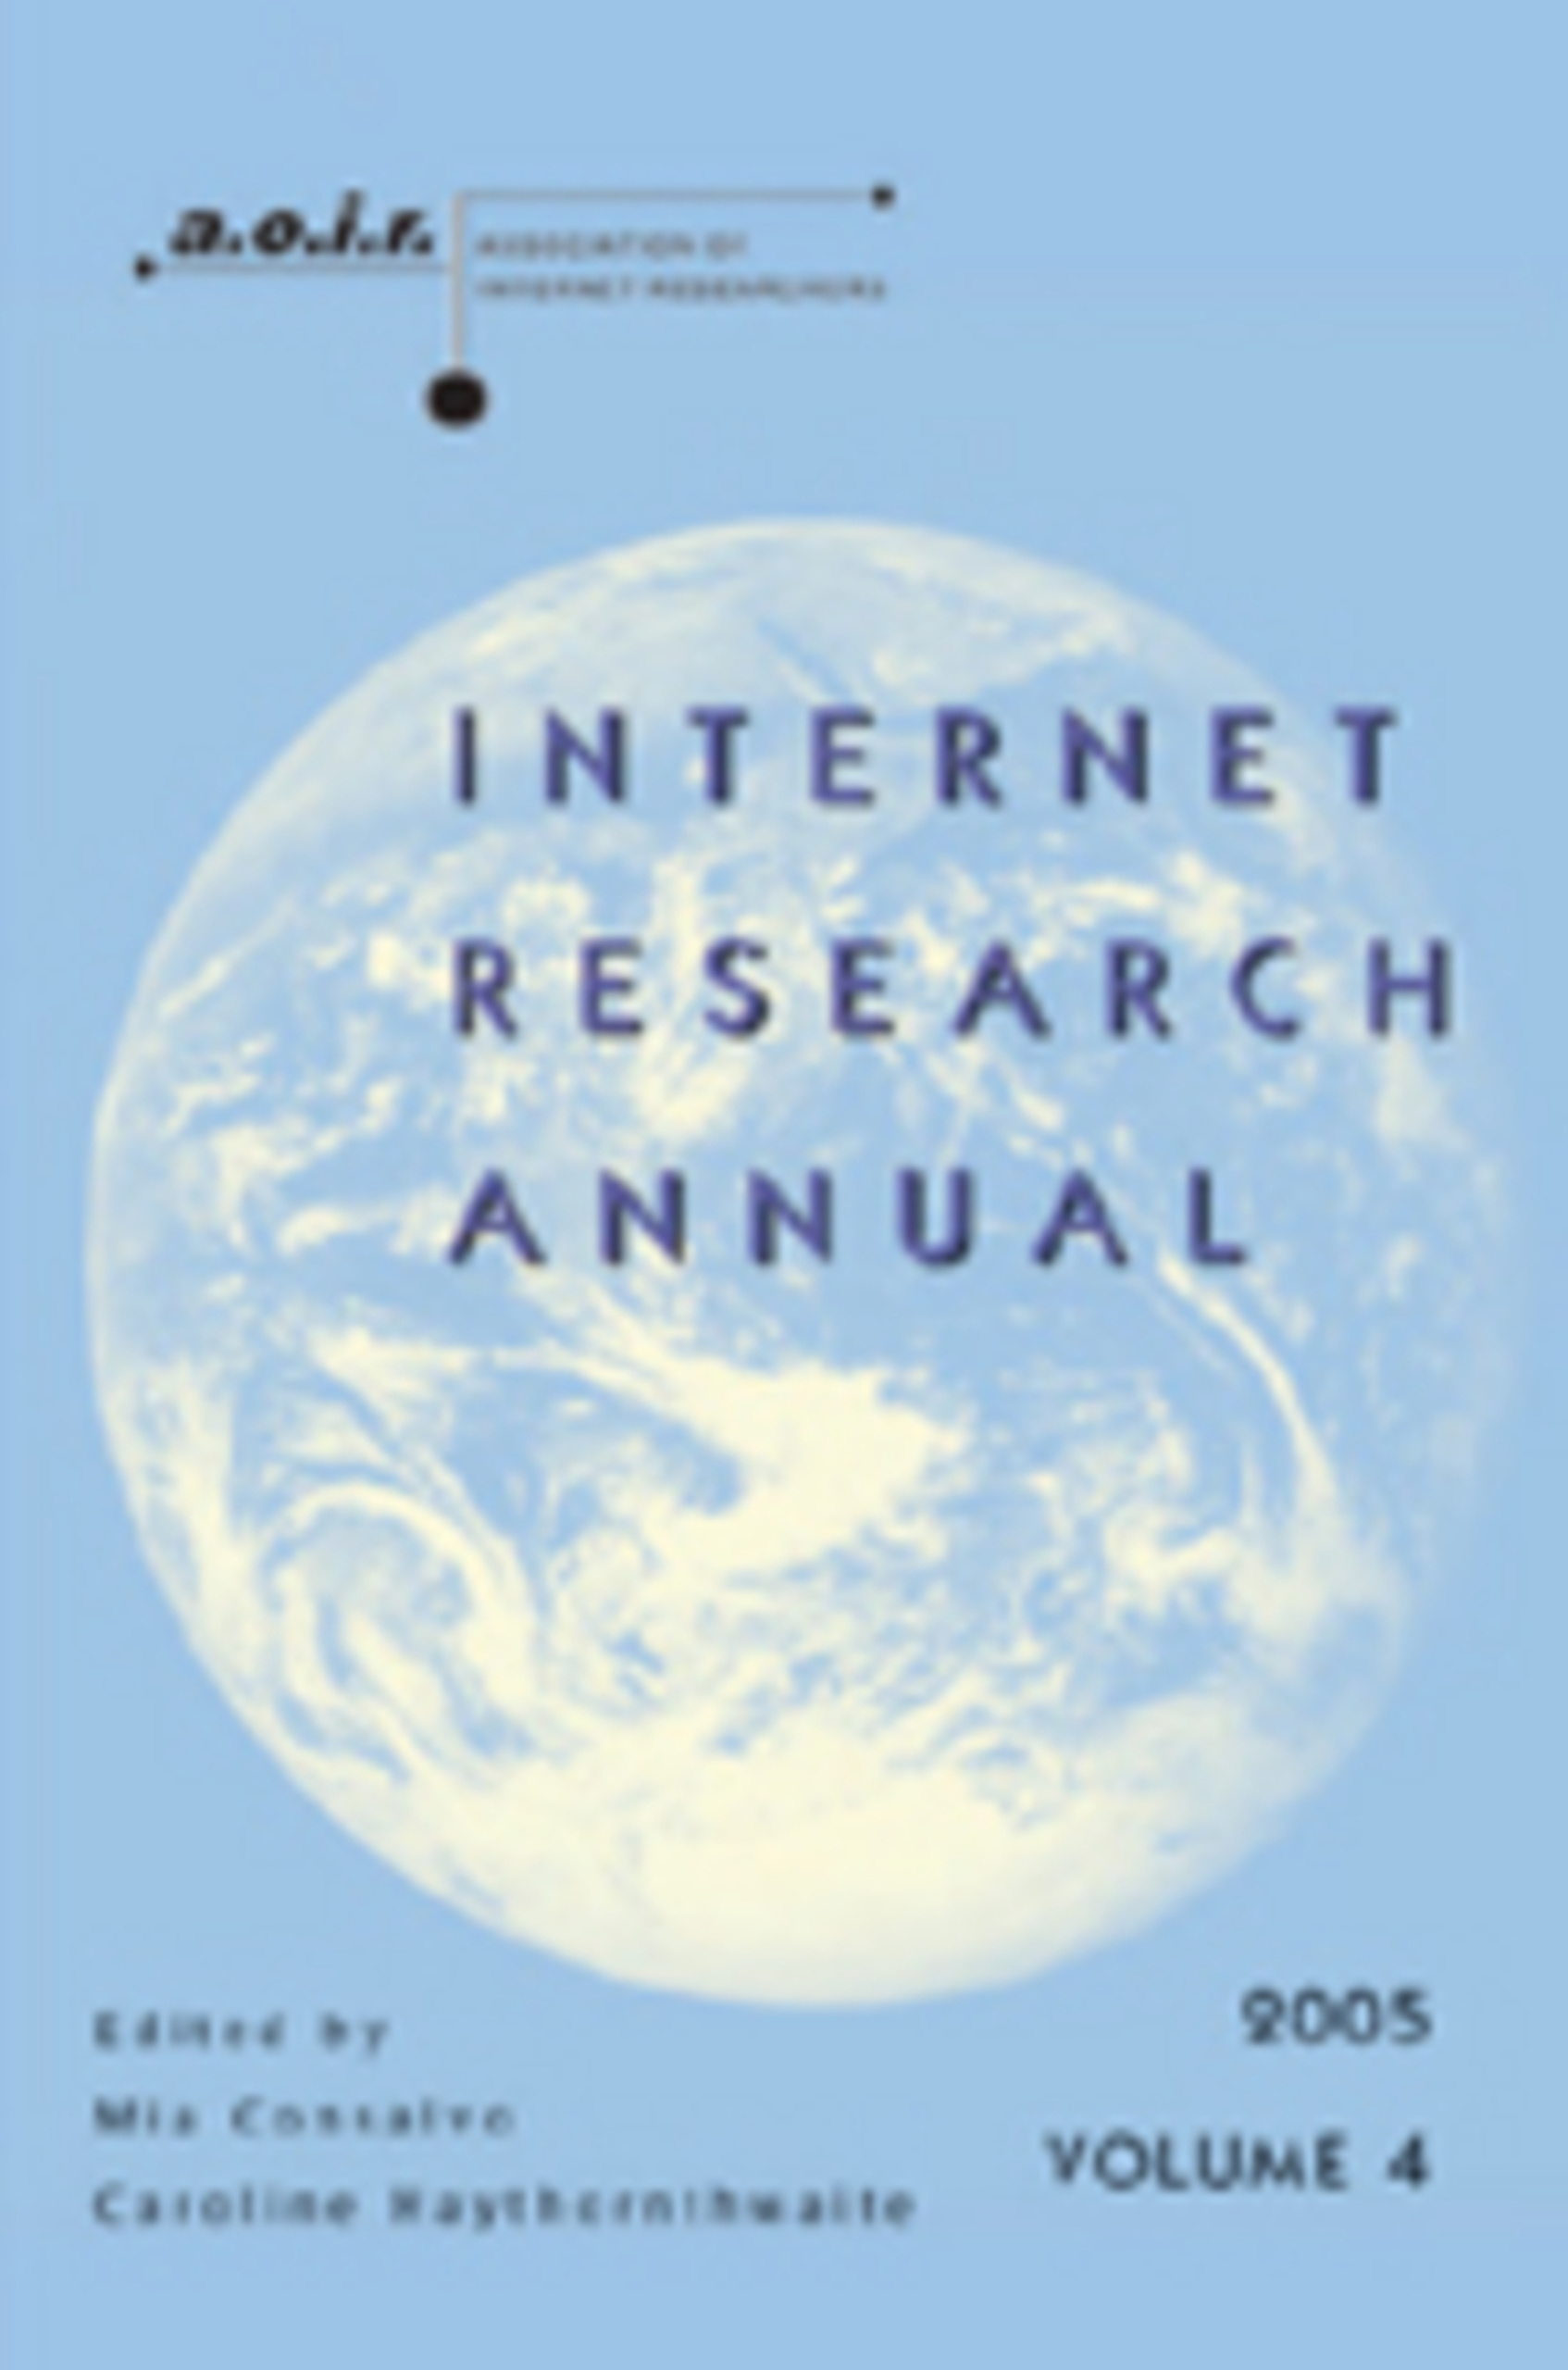 Title: Internet Research Annual